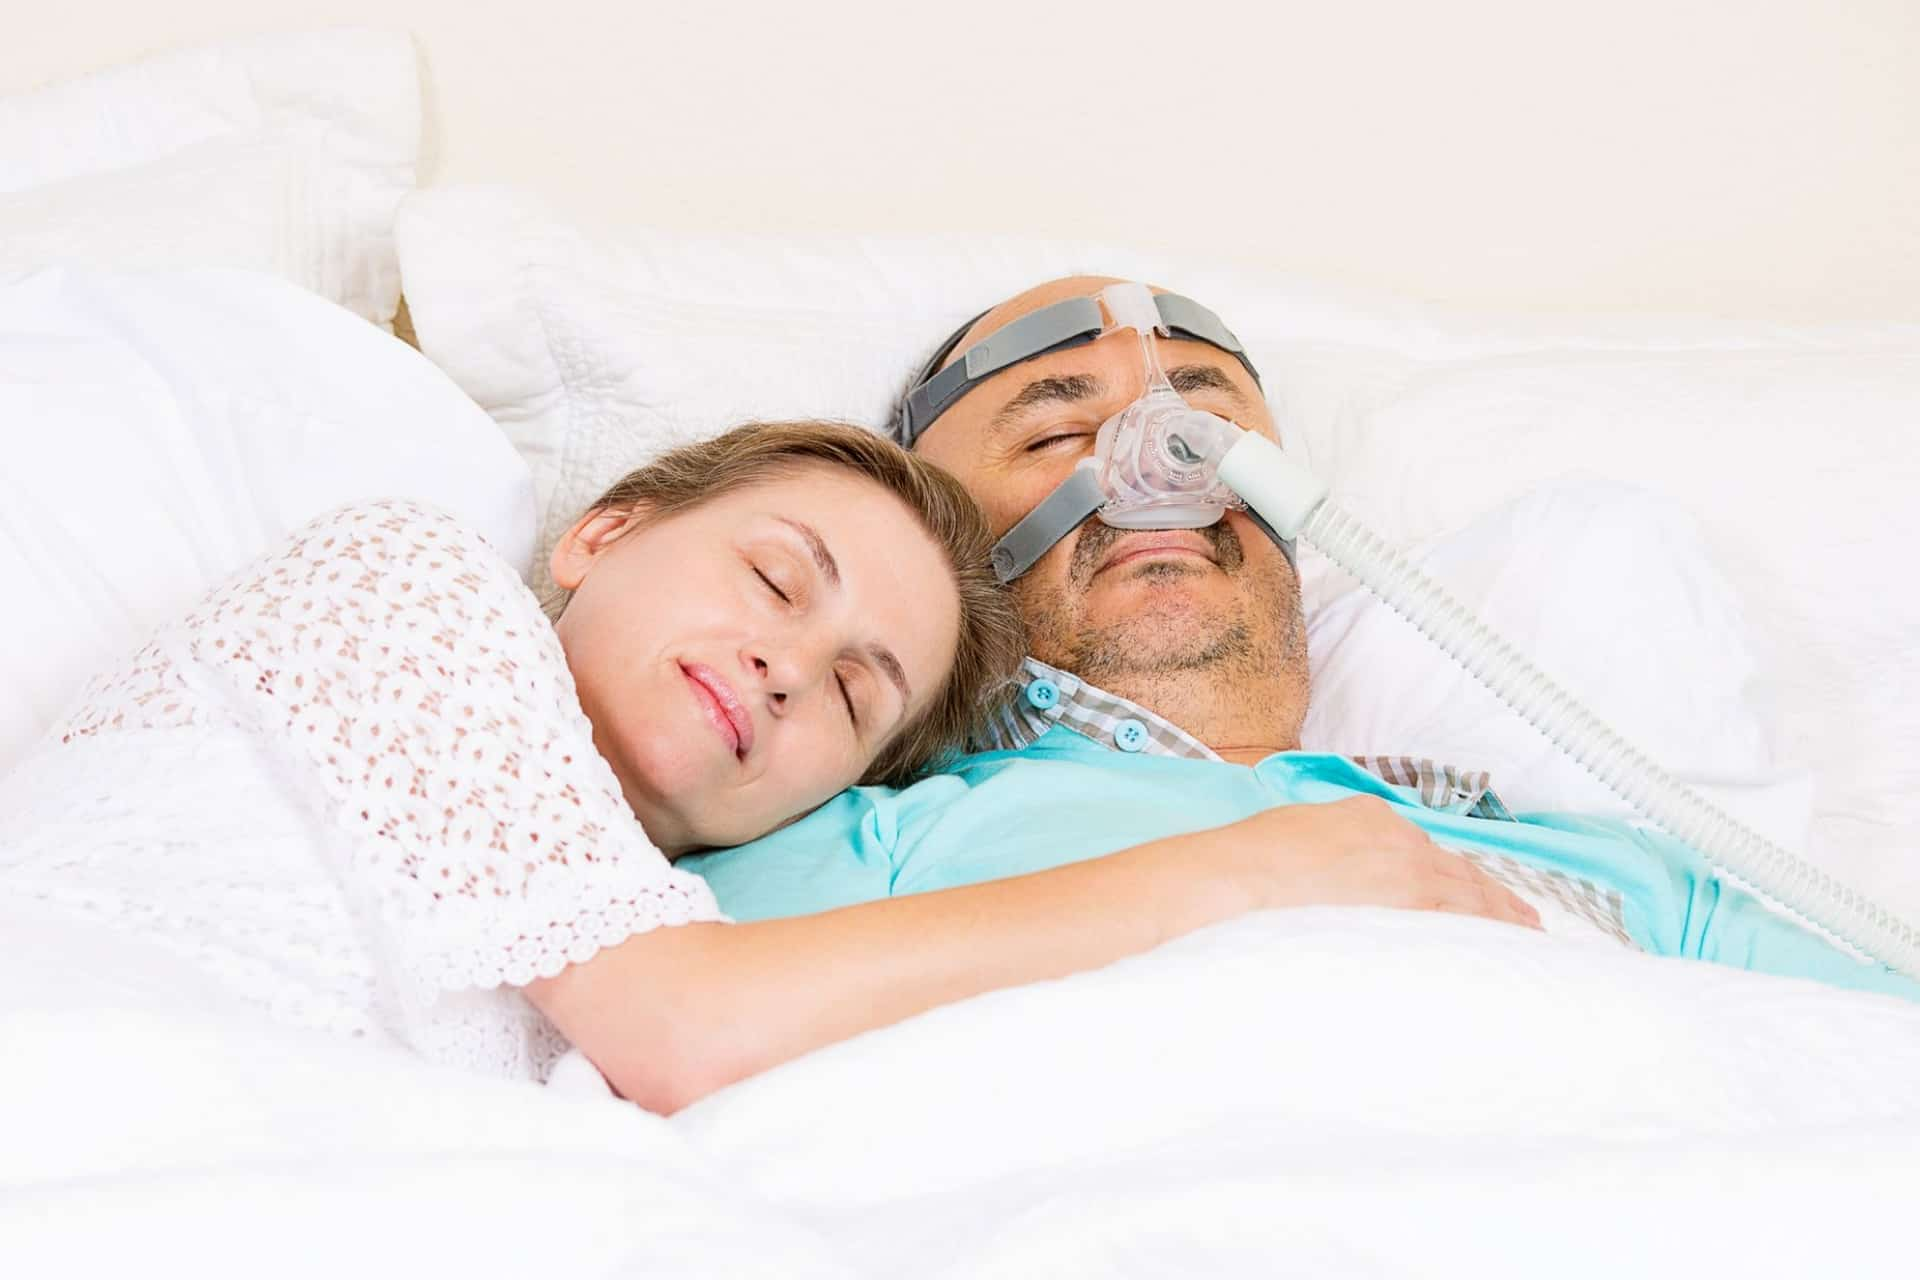 A couple sleeps in bed and the man is wearing a CPAP mask.